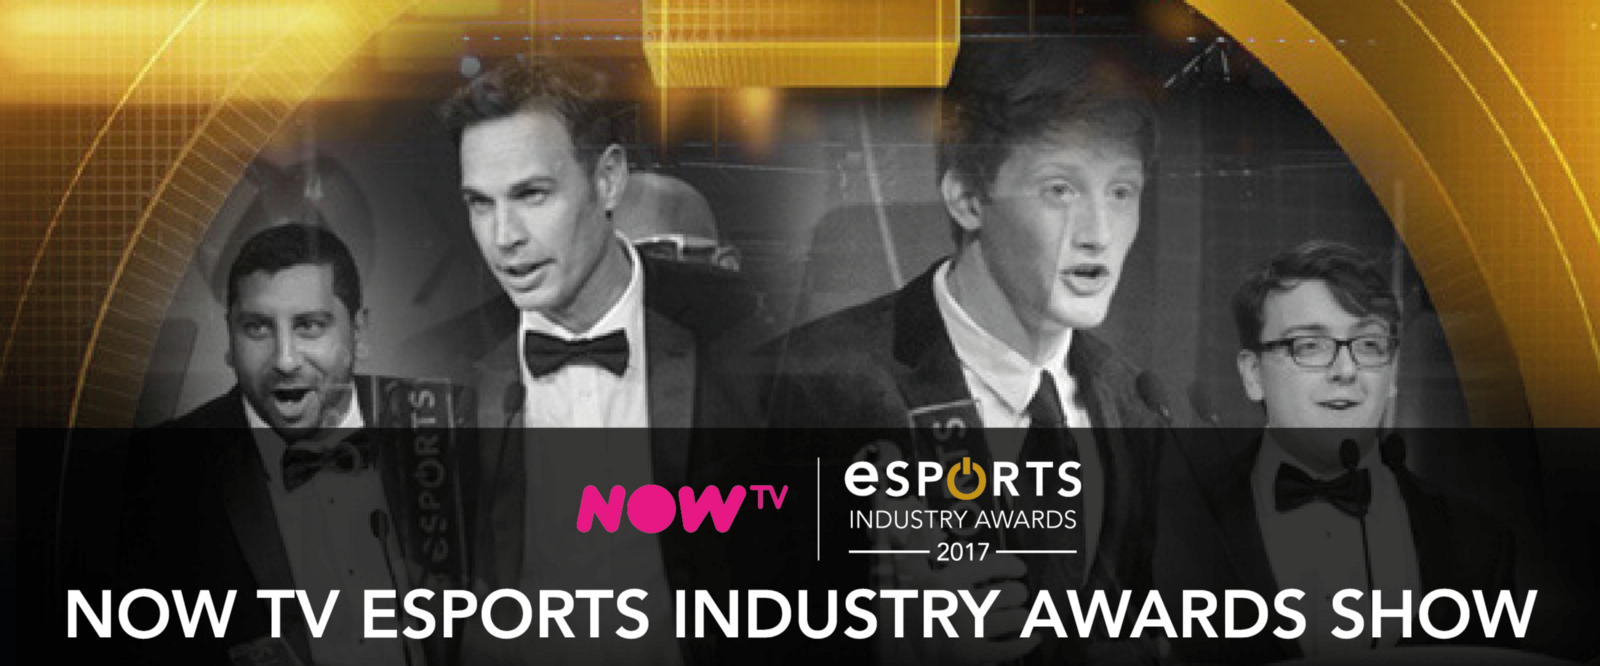 Now TV presents: Esports Industry Awards exclusively on Twitch